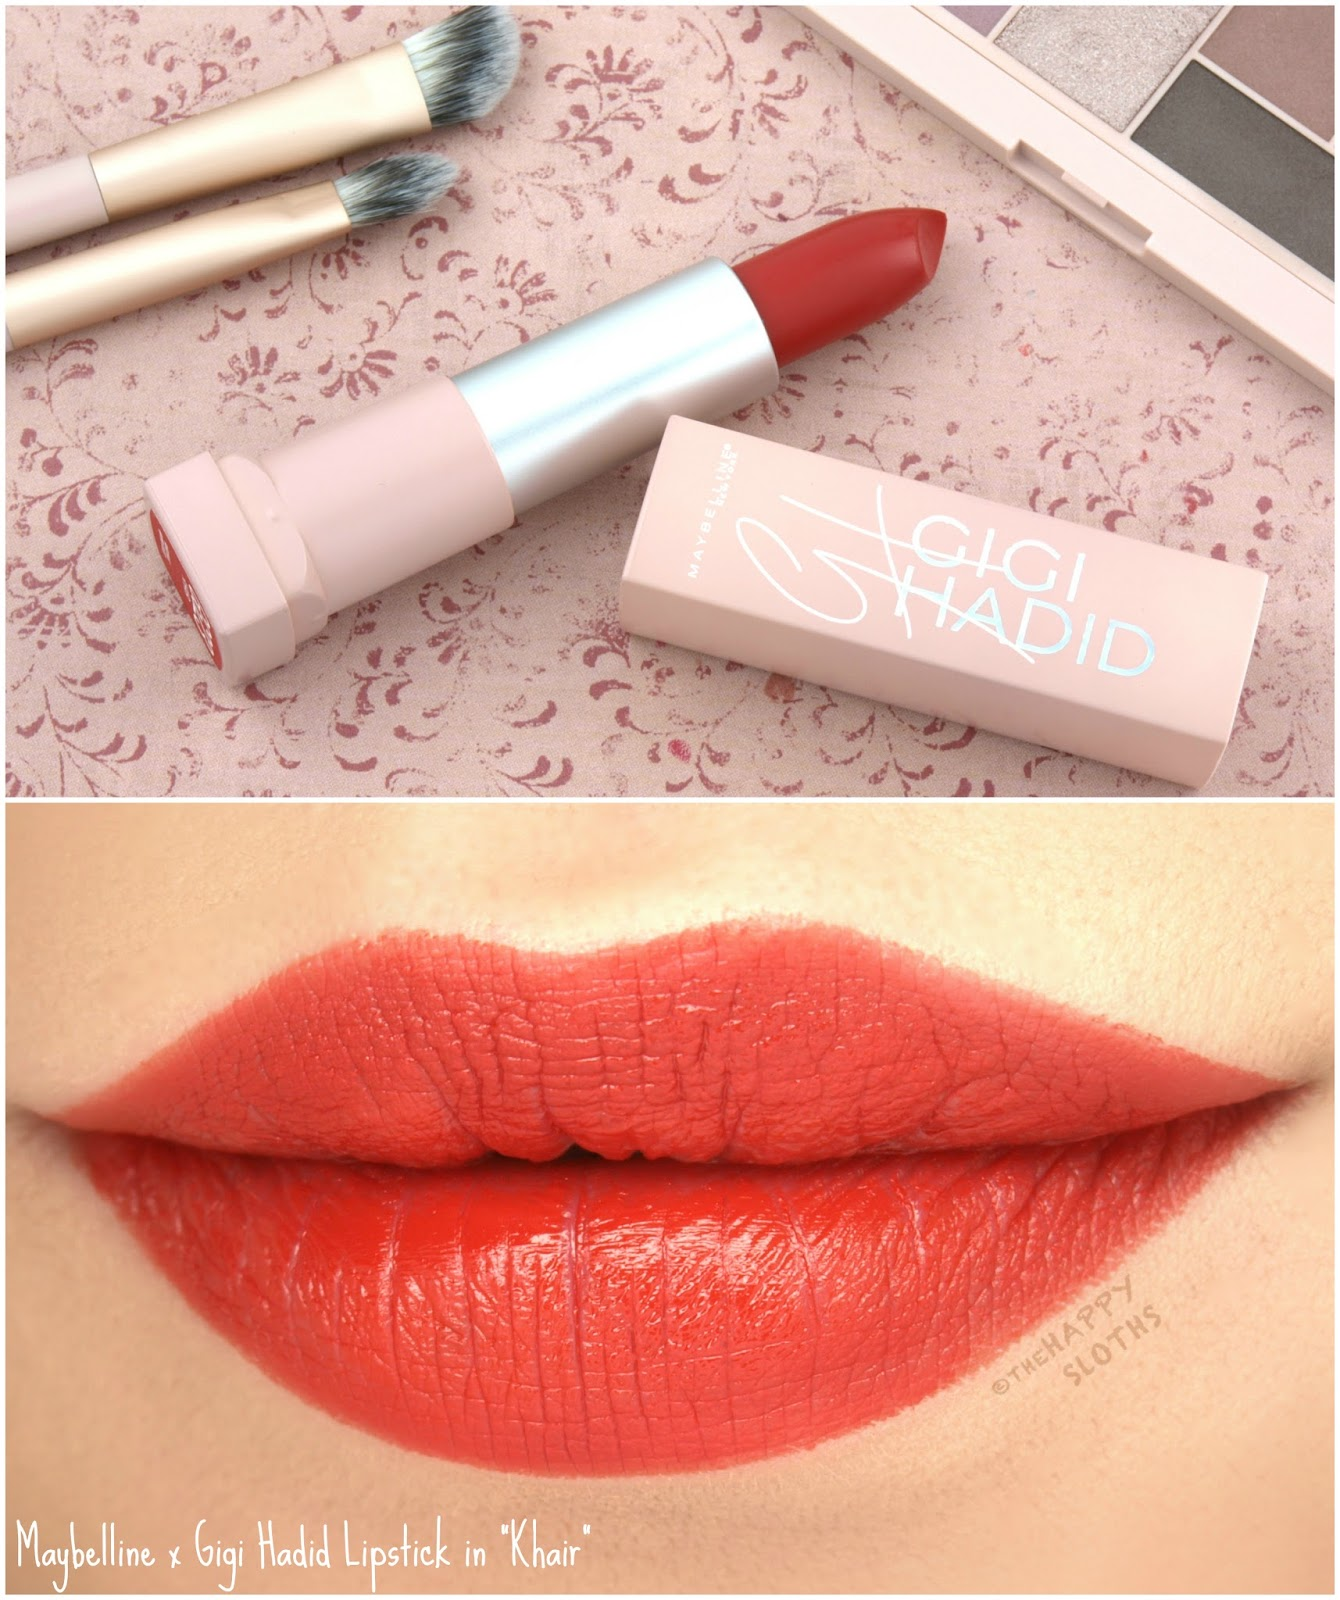 """Maybelline x Gigi Hadid Lipstick in """"Khair"""": Review and Swatches"""